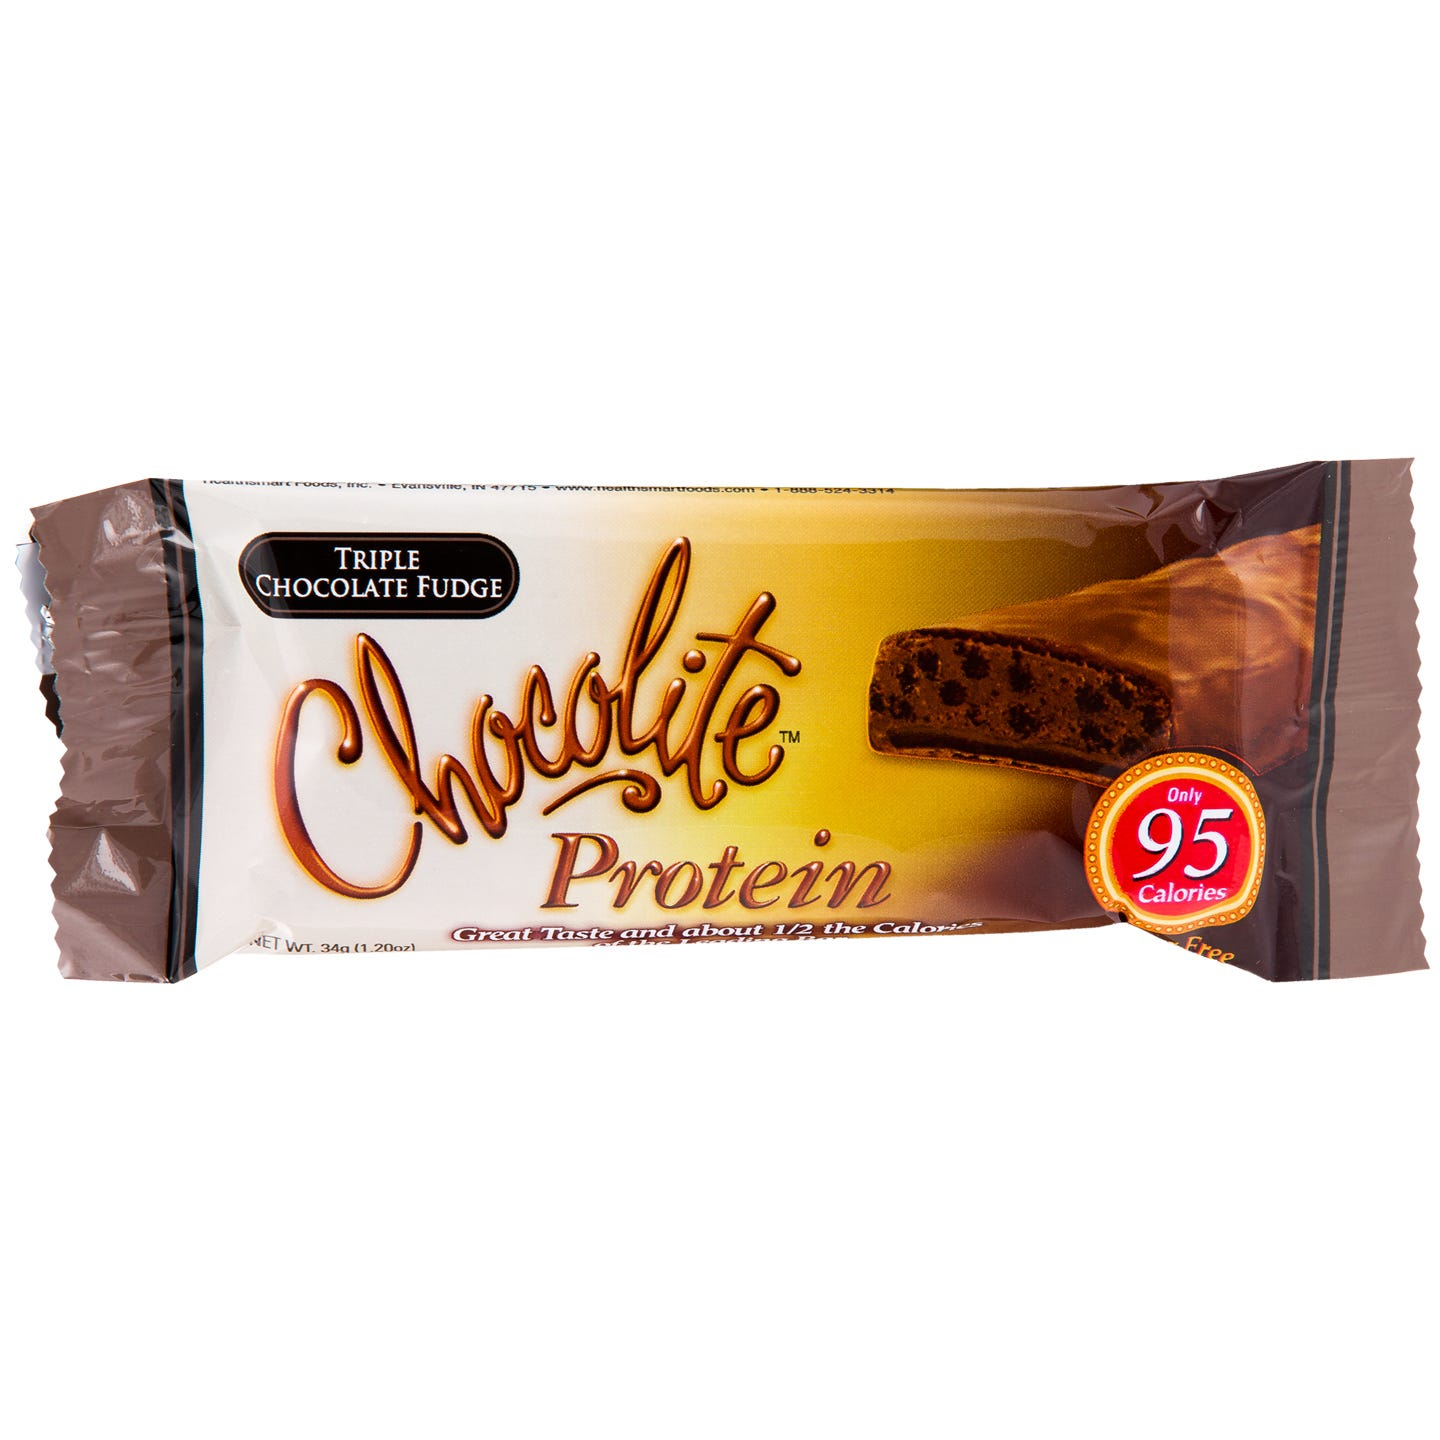 Chocolite Sugar-Free Protein Bars - Triple Chocolate Fudge